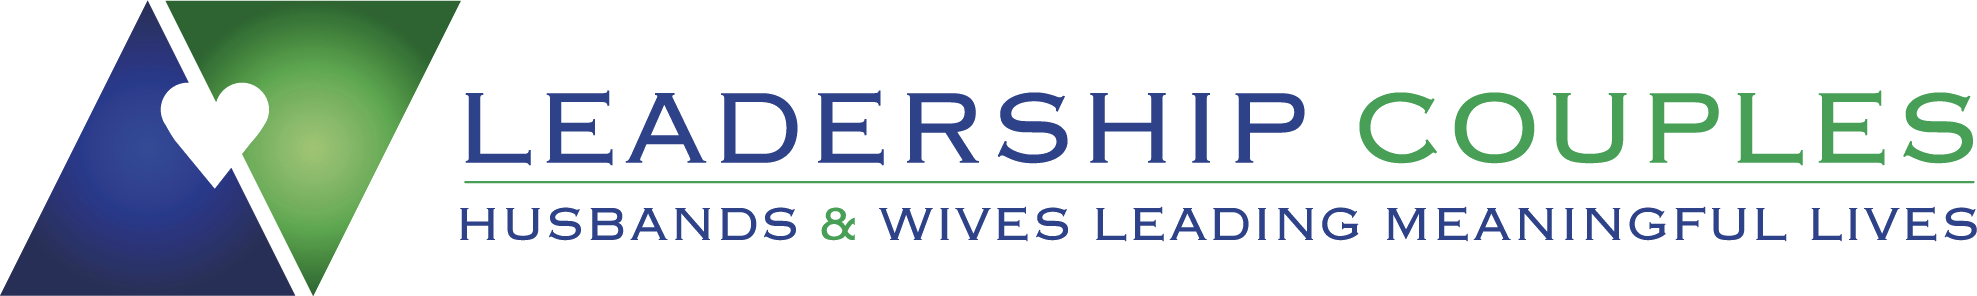 transparent leadership couple logo 2